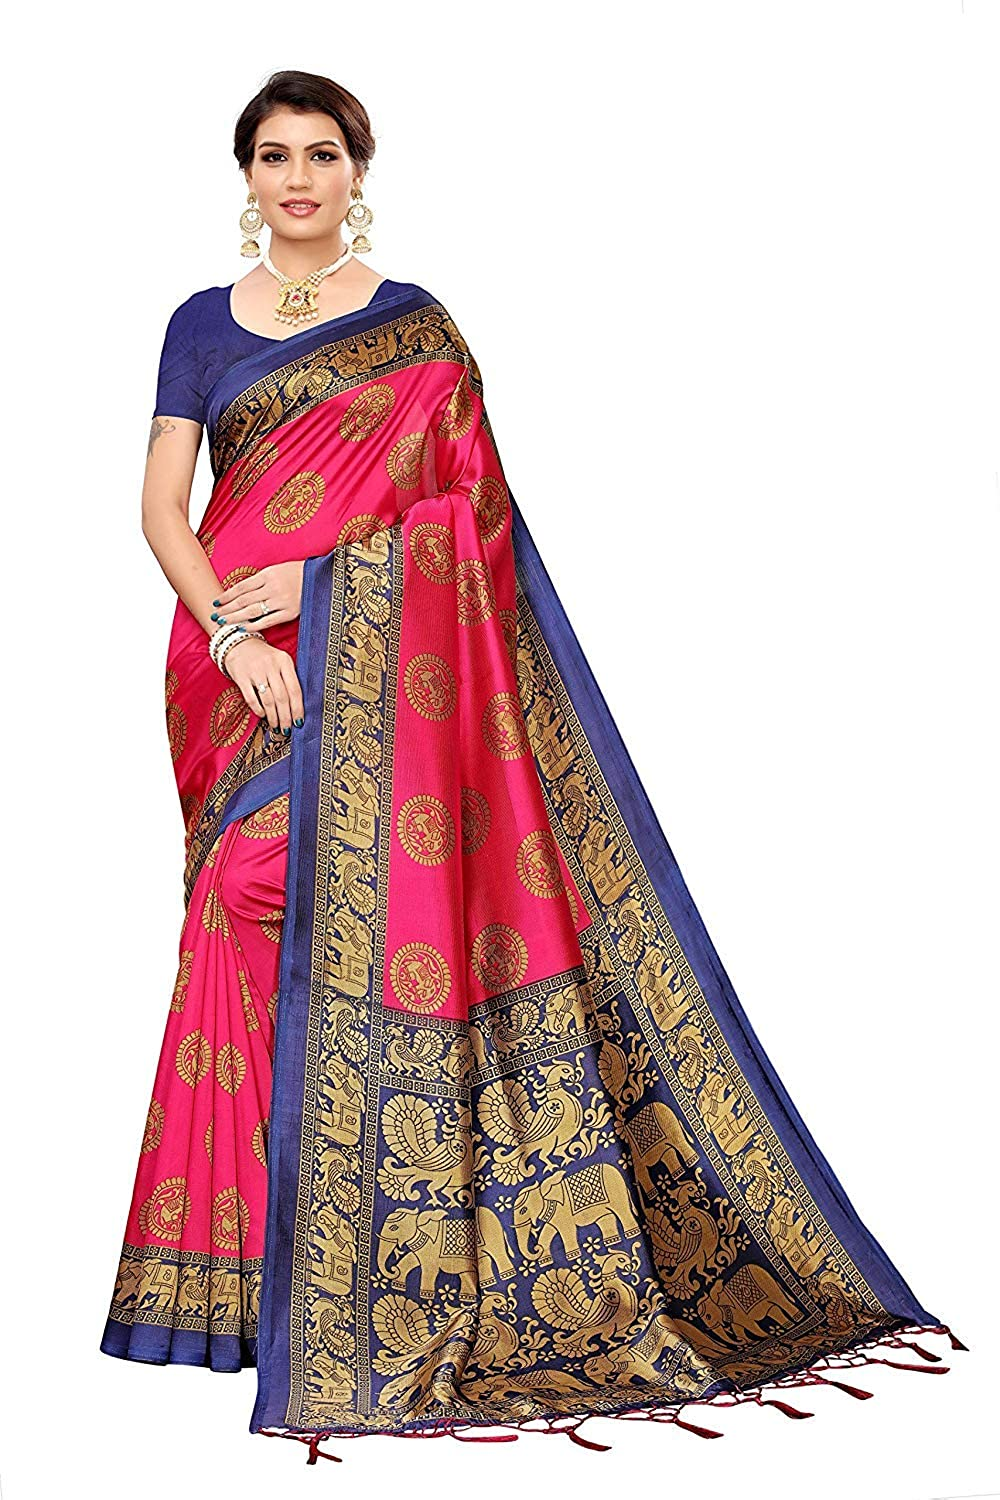 Winza Designer Women's Banarasi Art Silk Saree with Blouse Pink